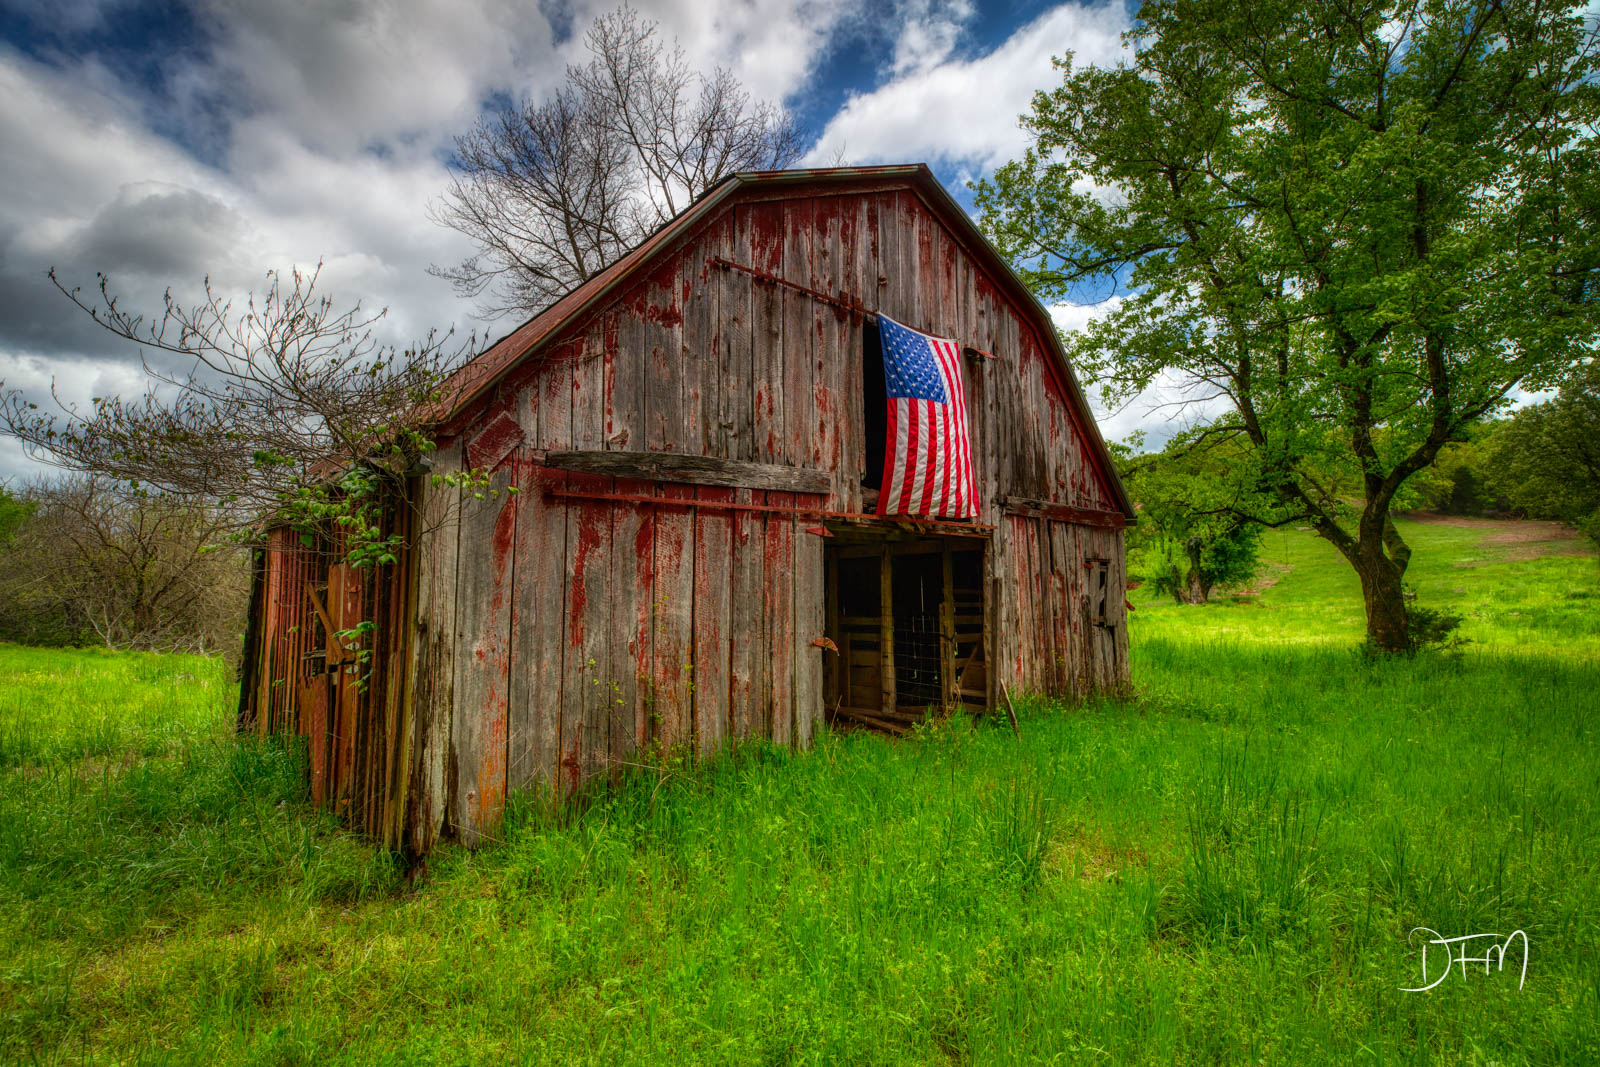 Old Glory on an Old Barn, anda beautiful spring day as a rain event began to clear withblue sky breaking through....